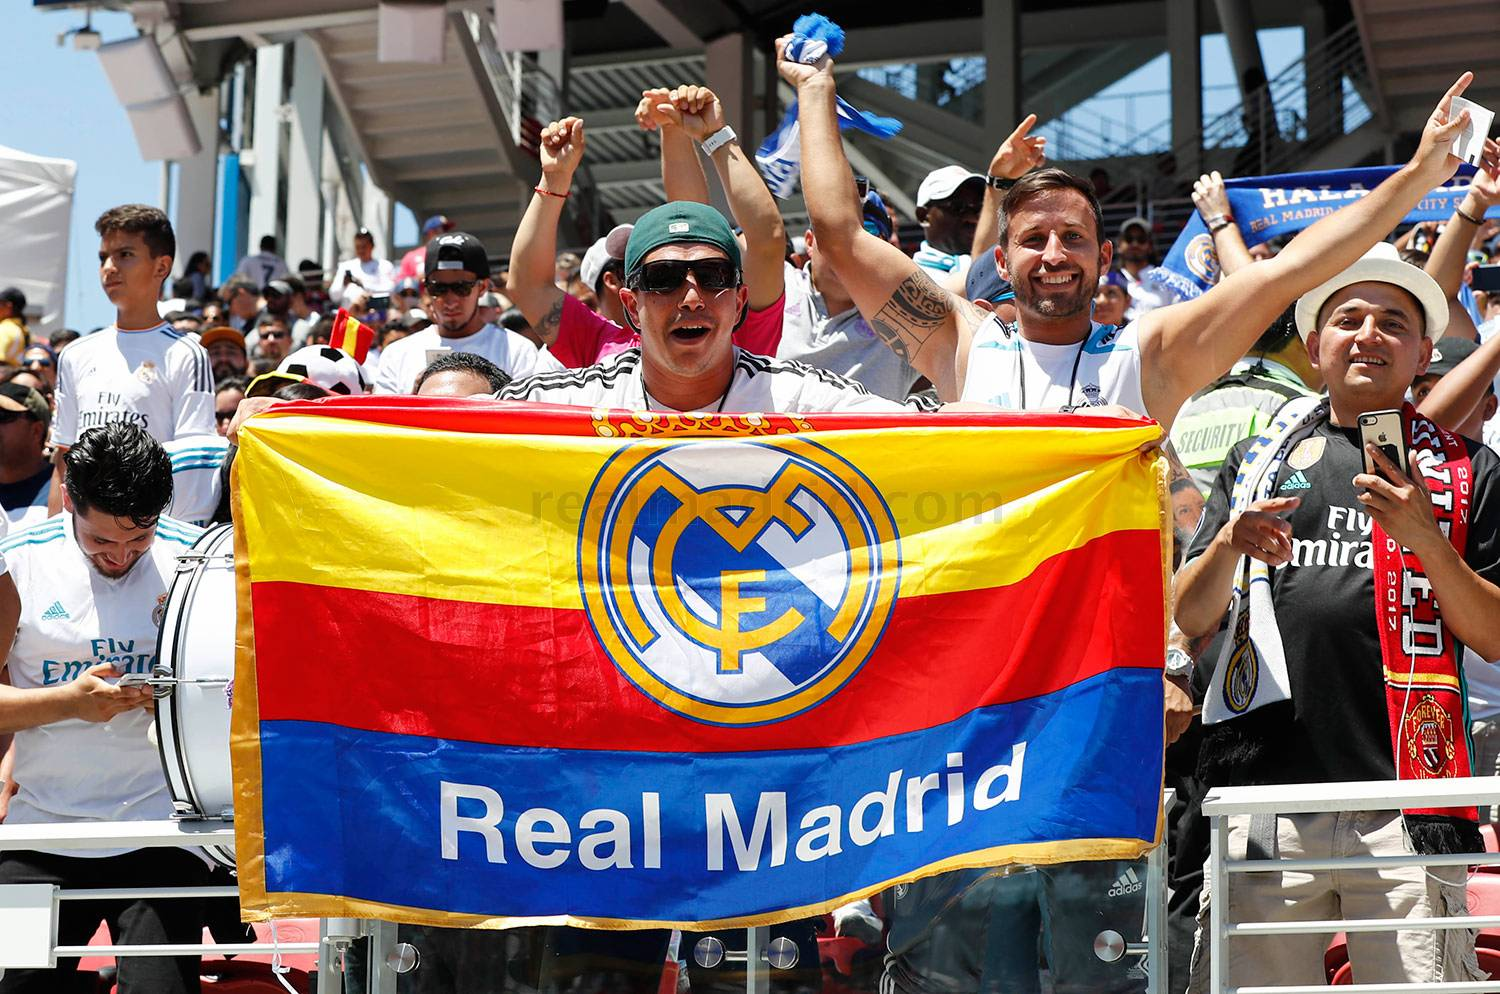 Real Madrid - Real Madrid - Manchester United - 23-07-2017